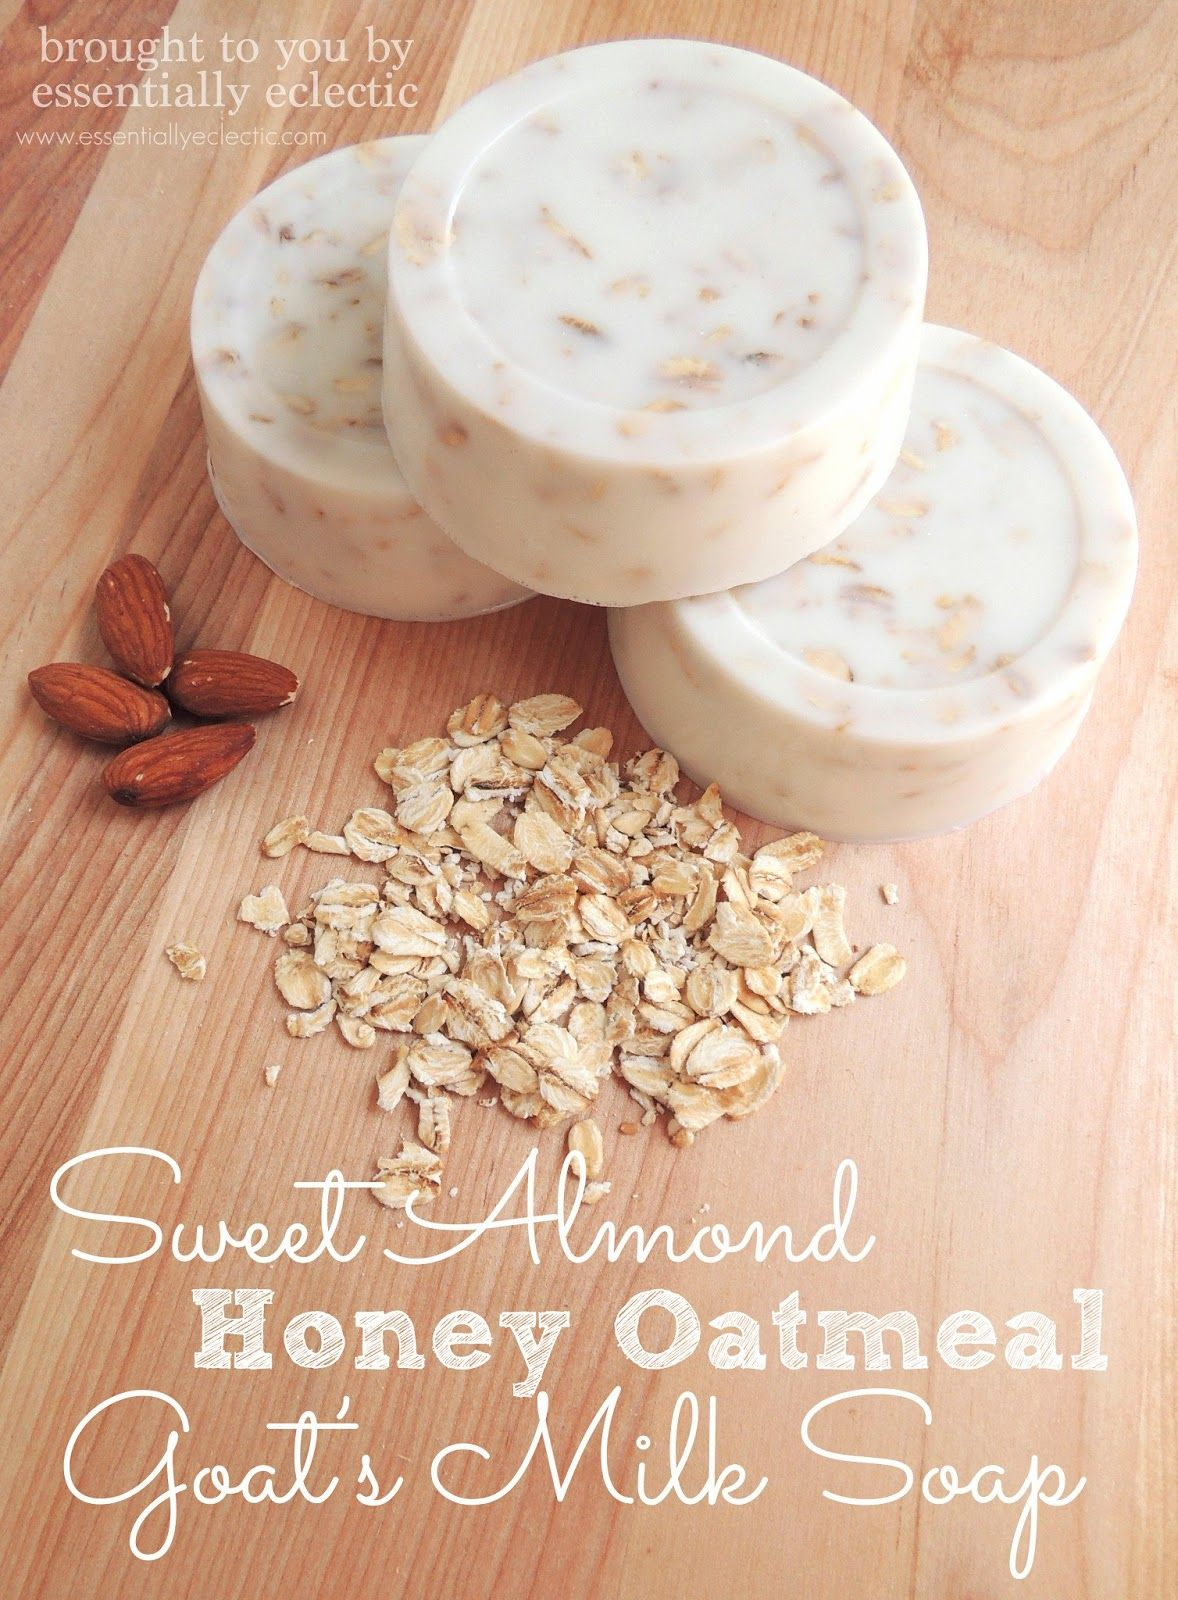 Sweet Almond Honey Oatmeal Goat's Milk Soap via Essentially Eclectic